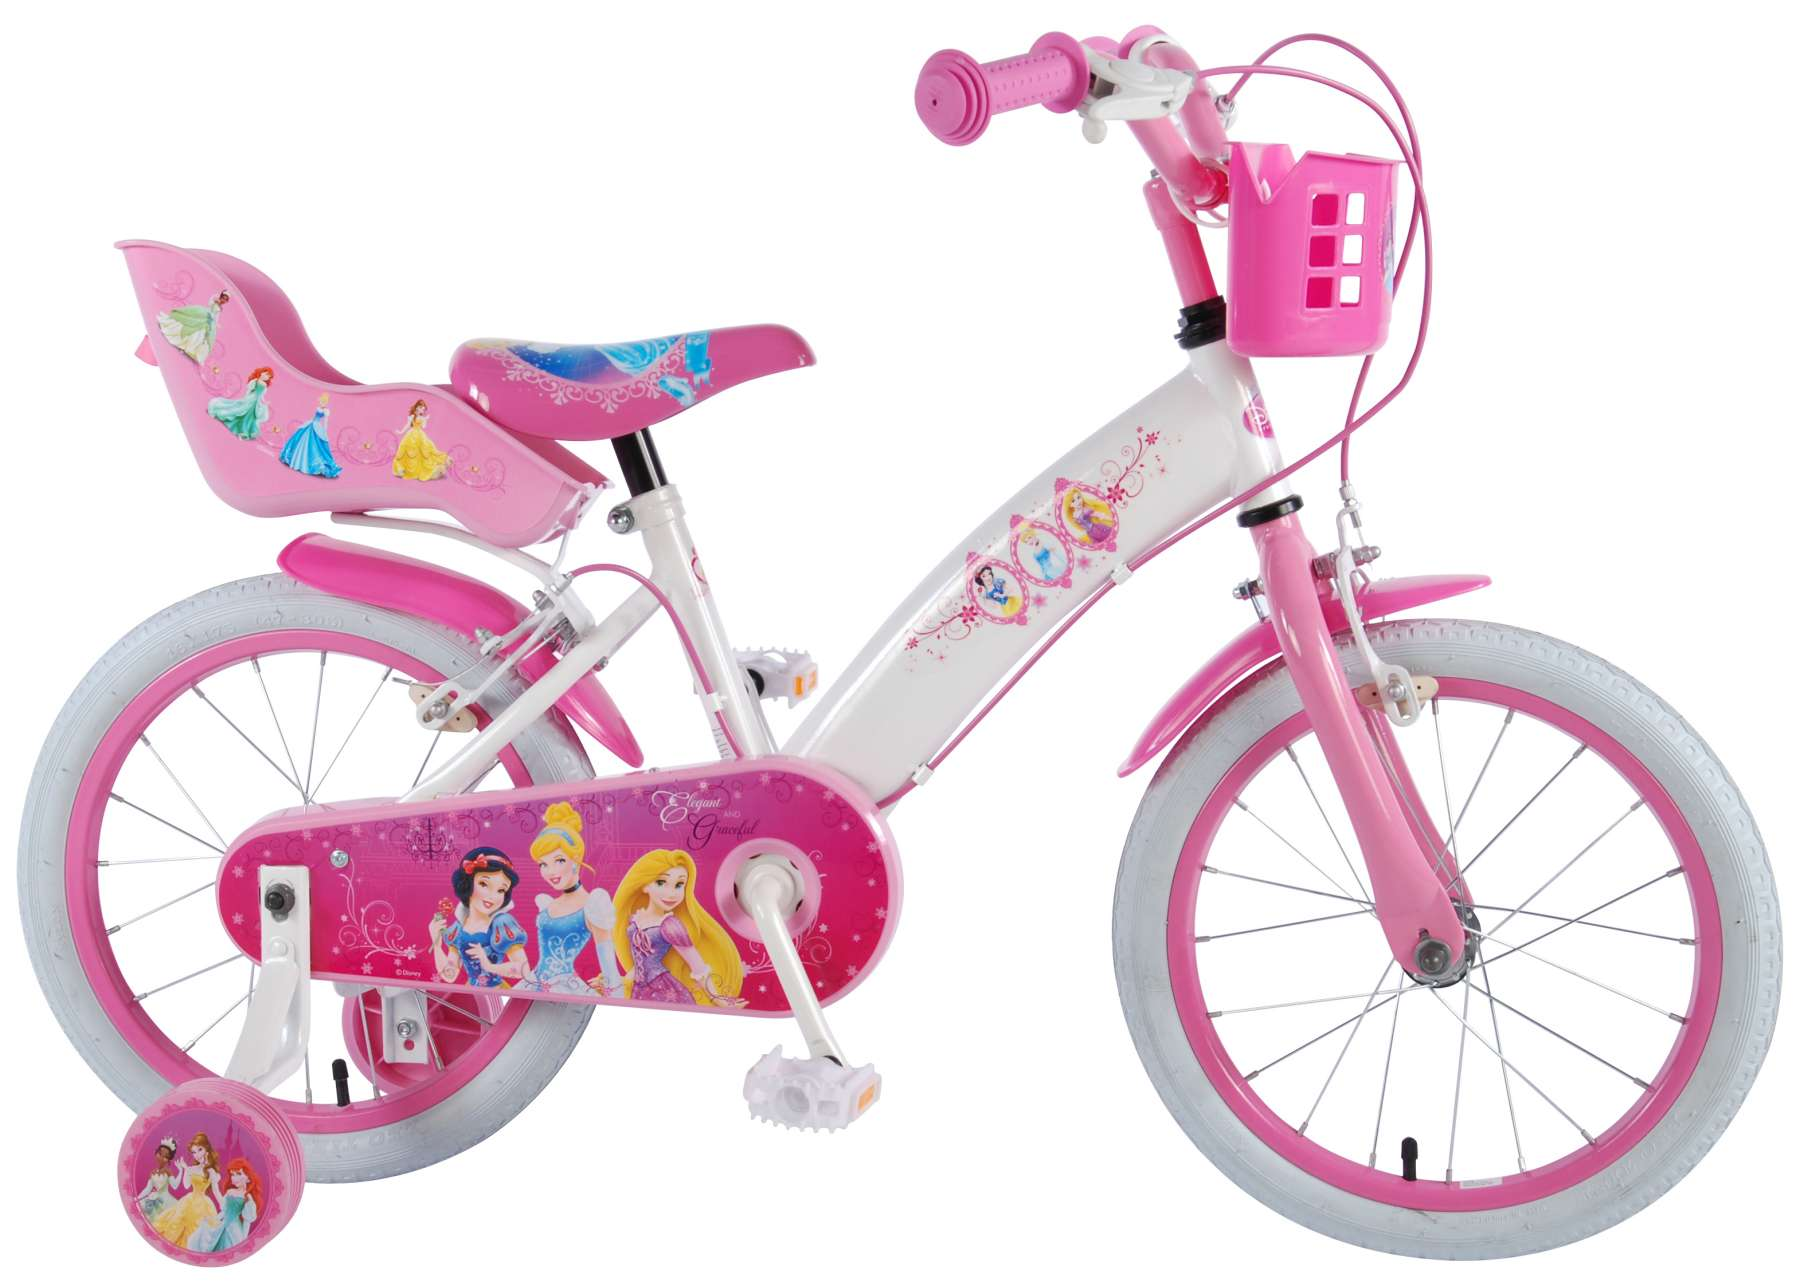 78df61196a1 Disney Princess 16 inch girls bicycle with two handbrakes